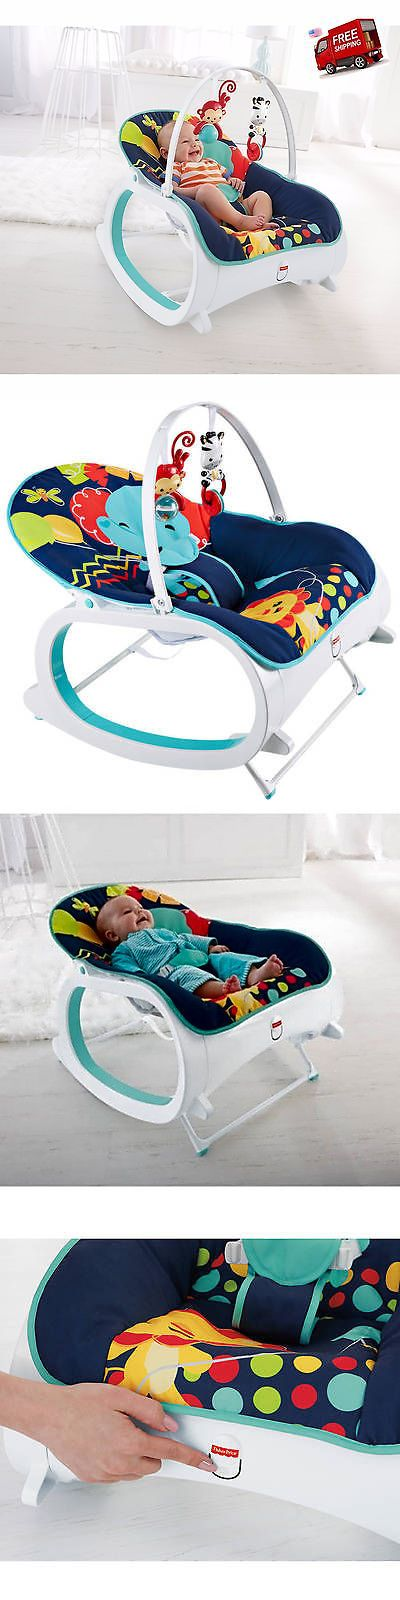 baby and kid stuff: Fisher Price Infant To Baby Seat Bouncer Toddler Rocker Chair Sleeper Toy Blue -> BUY IT NOW ONLY: $46.89 on eBay!